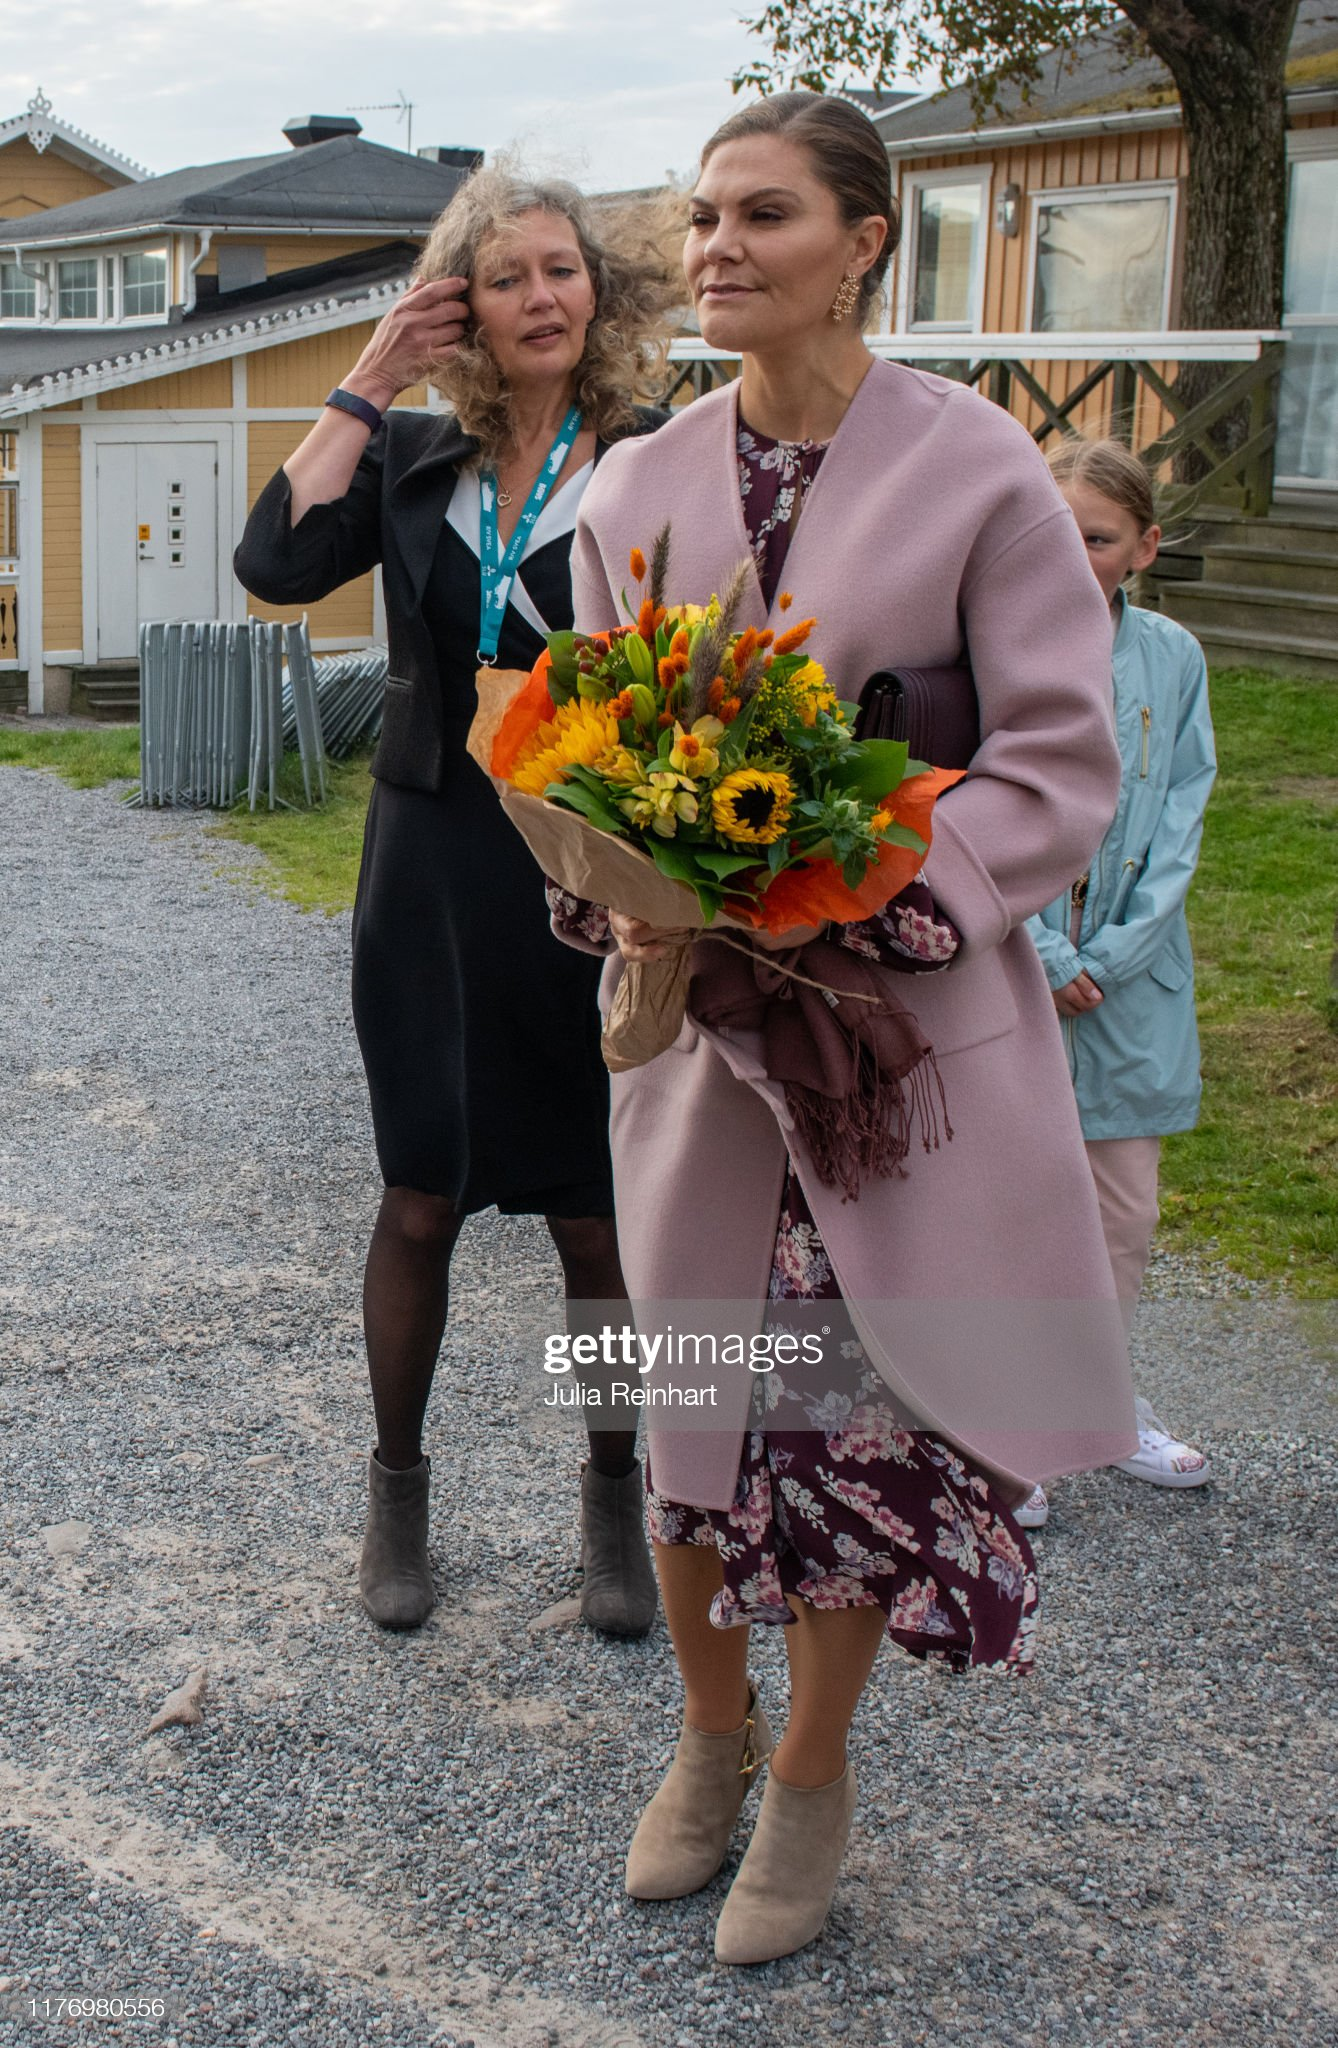 crown-princess-victoria-arrives-for-her-visit-to-the-sea-fish-on-25-picture-id1176980556